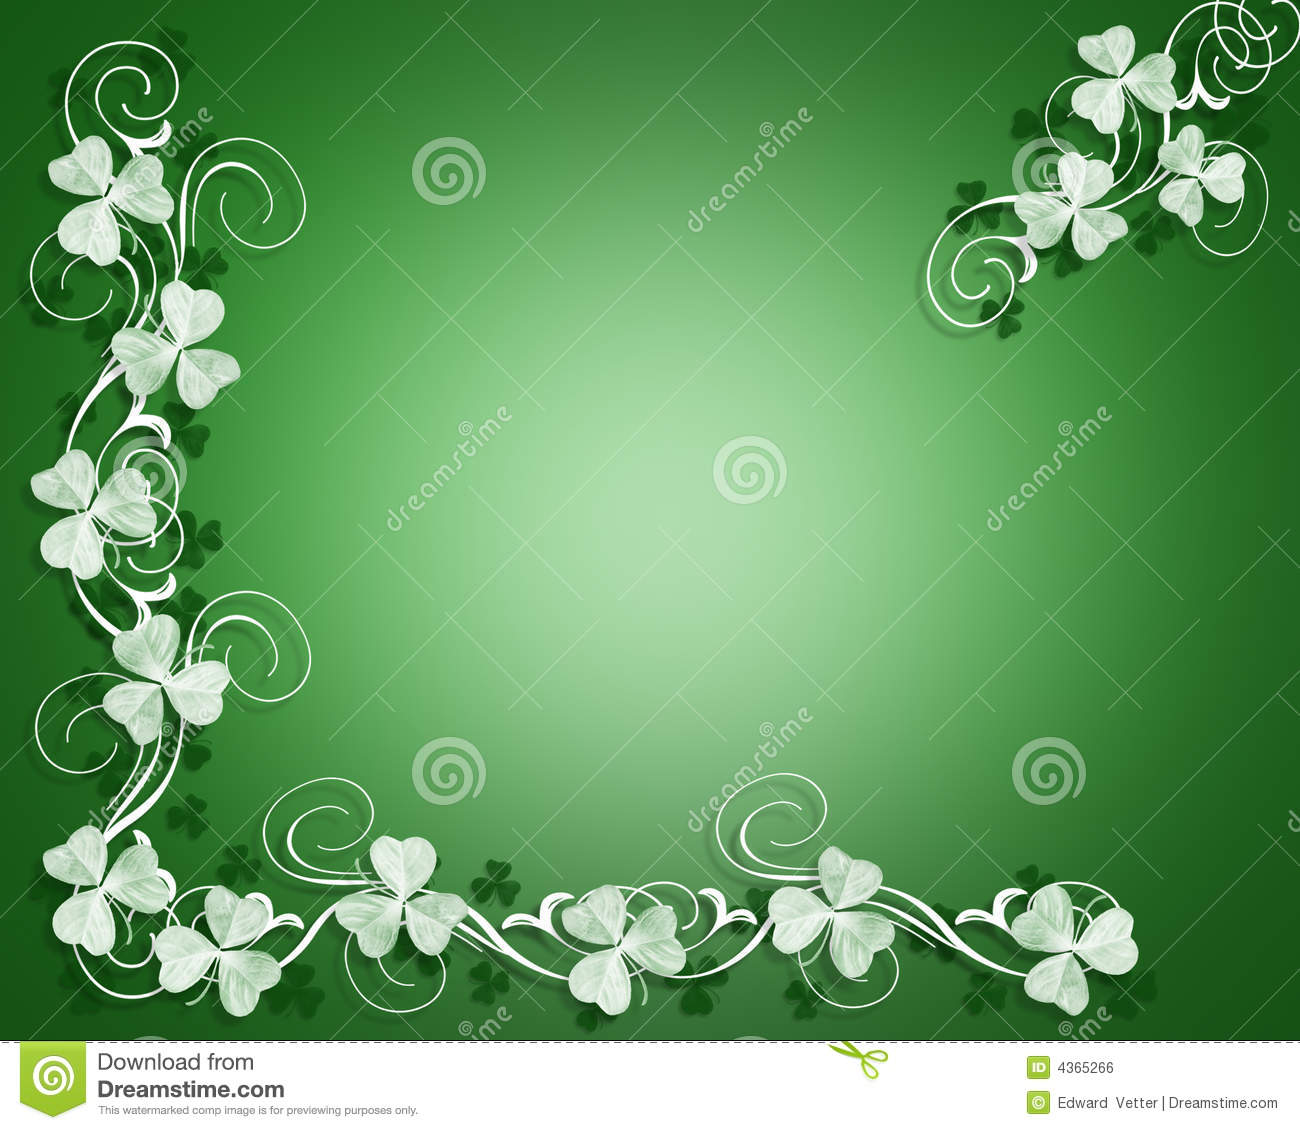 3D Illustration for St Patrick's Day Card, background, border or frame ...